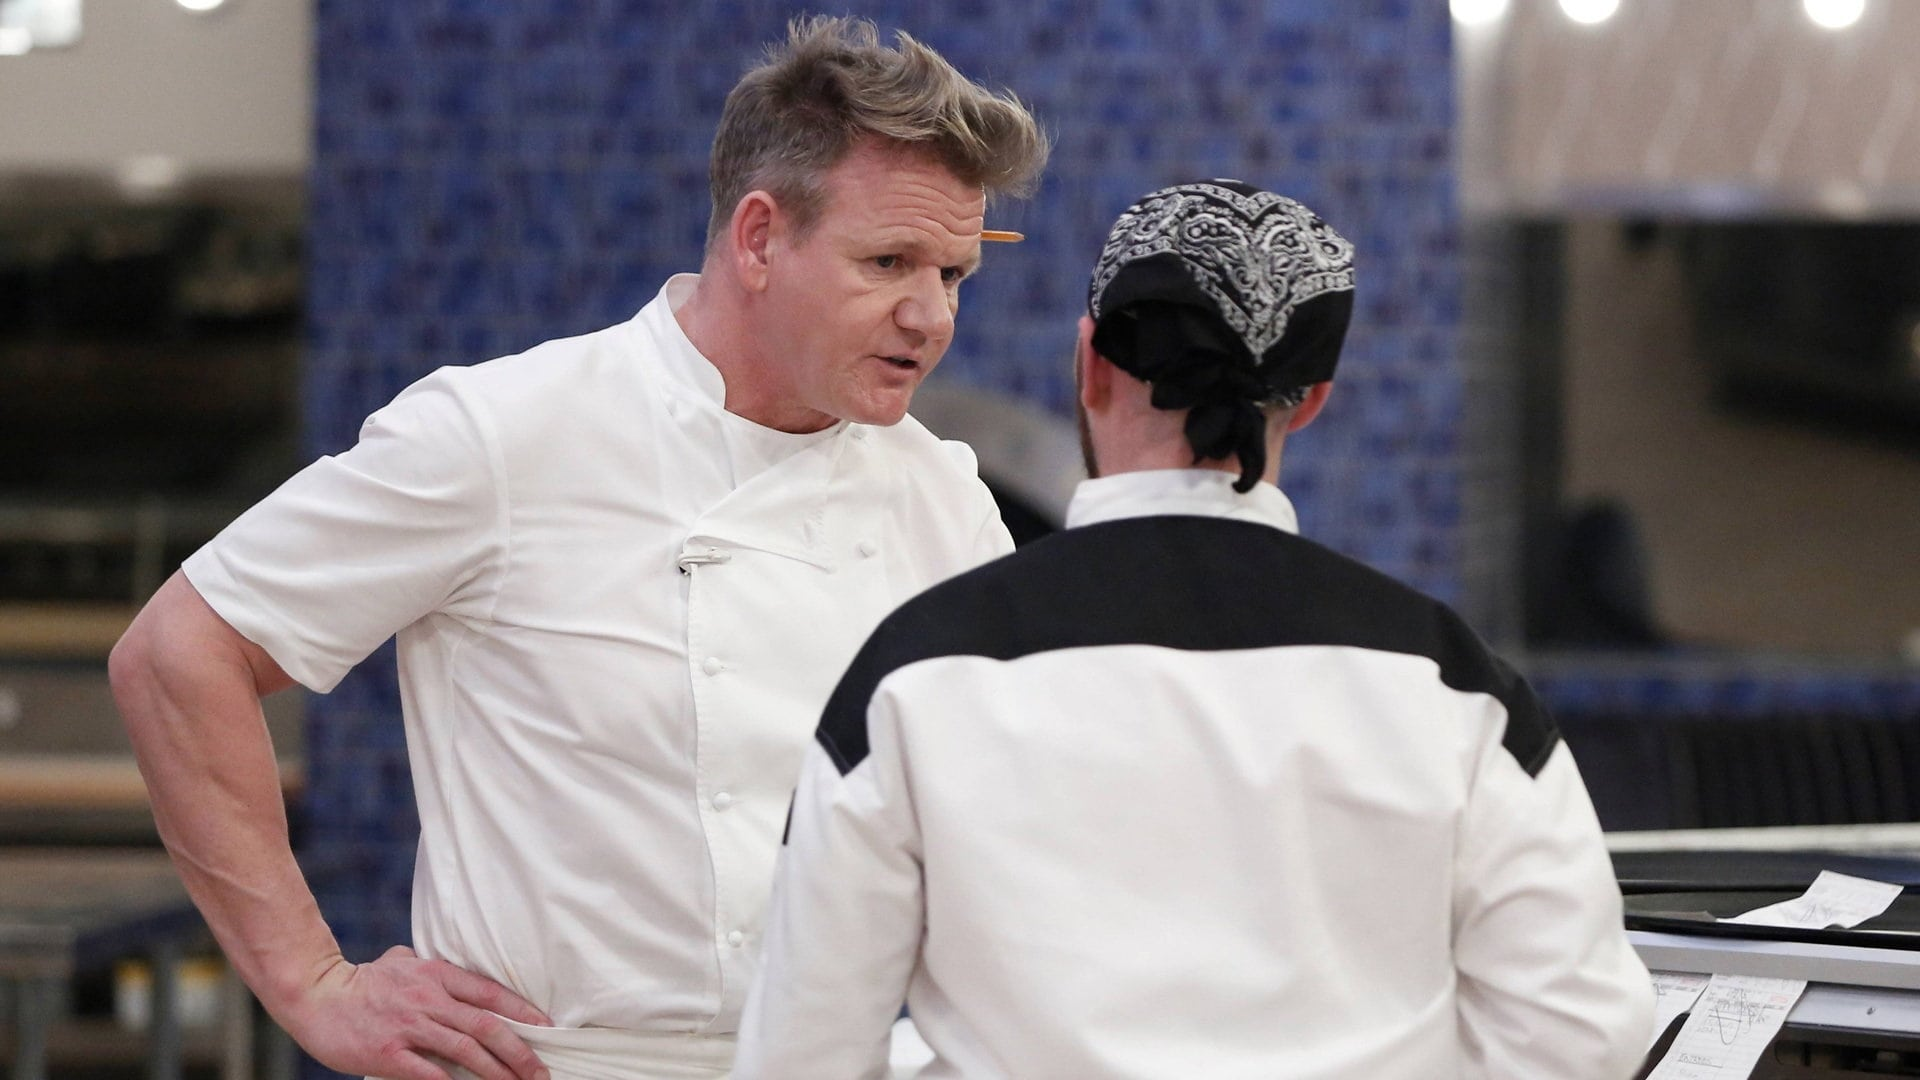 Watch hell 39 s kitchen season 16 episode 14 playing your for Watch hell s kitchen season 16